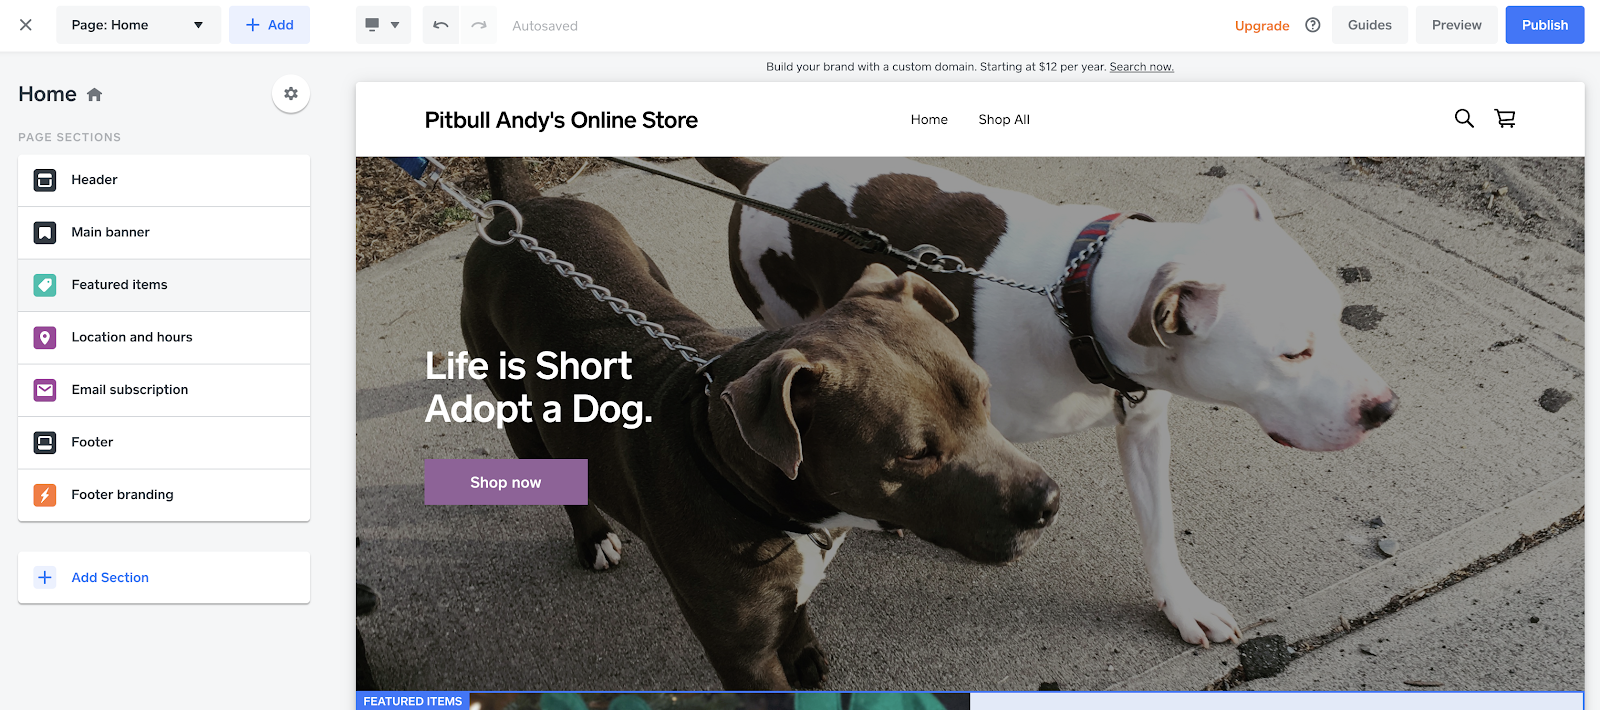 Square Online Store with pitbulls